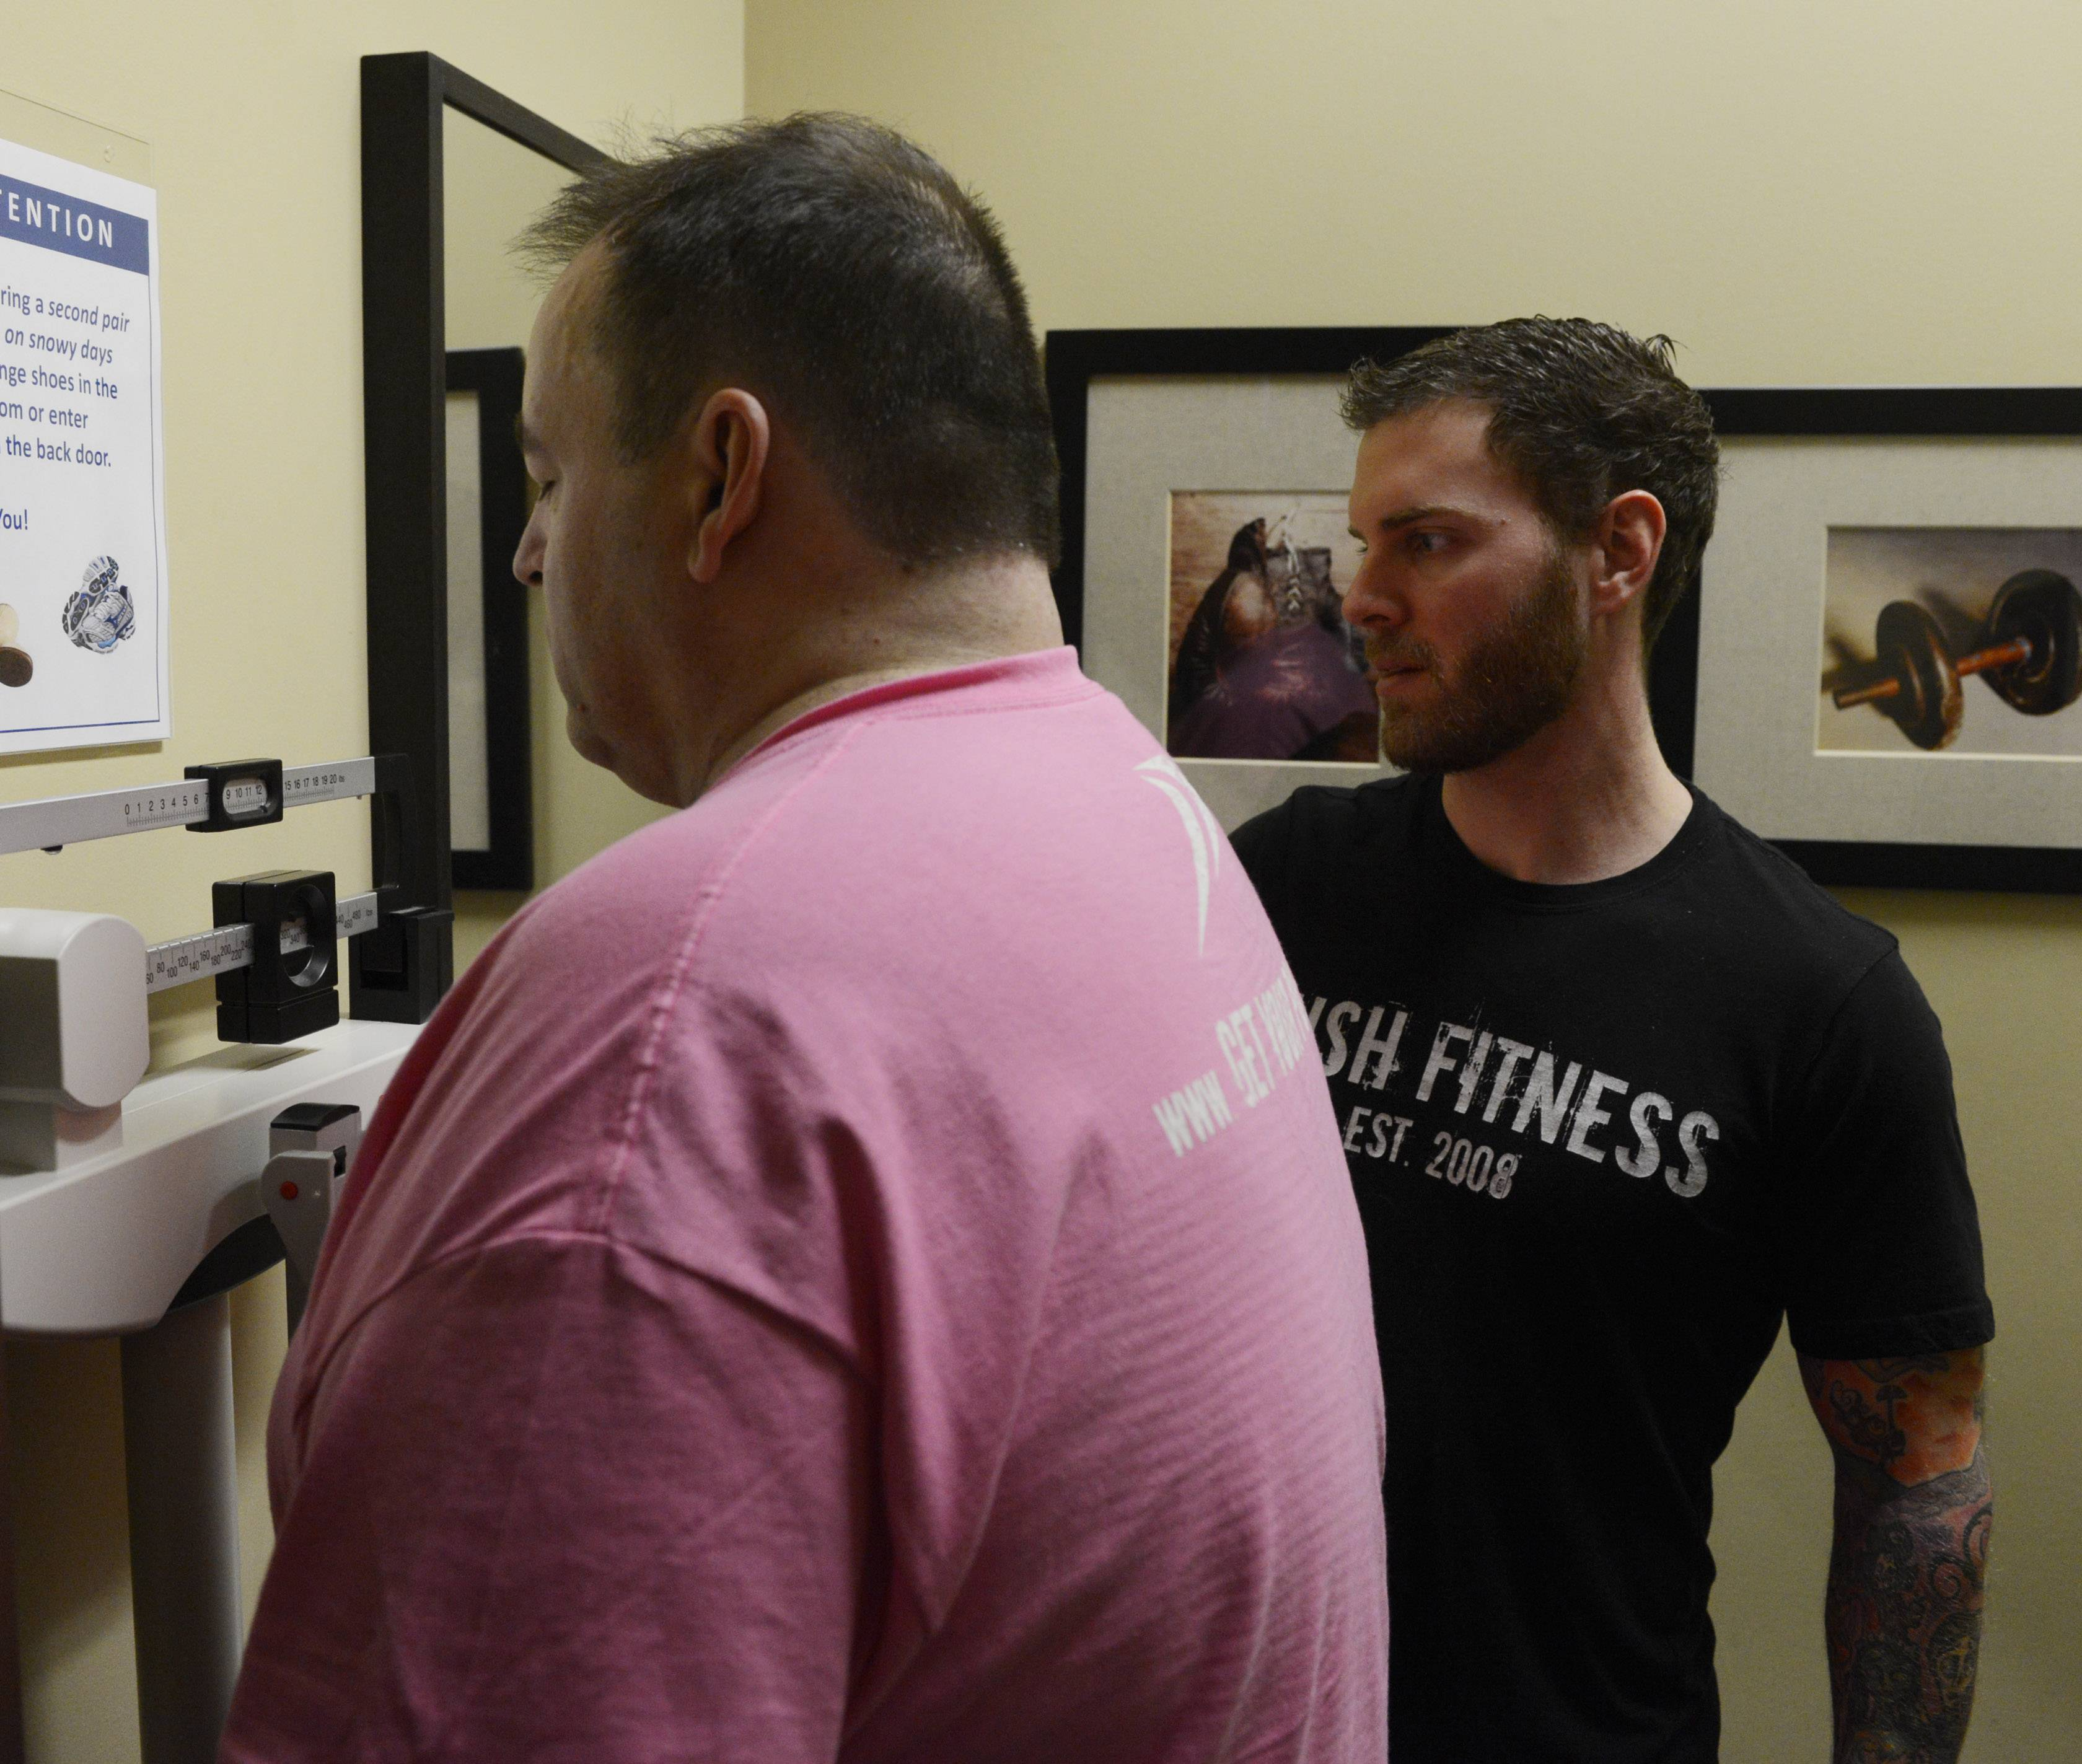 Every boot camp at Push Fitness in Schaumburg ends with the weekly weigh-in. Trainer Brad Parotto checks the numbers as John Bohanek weighs in — after four weeks he is down 29 pounds.